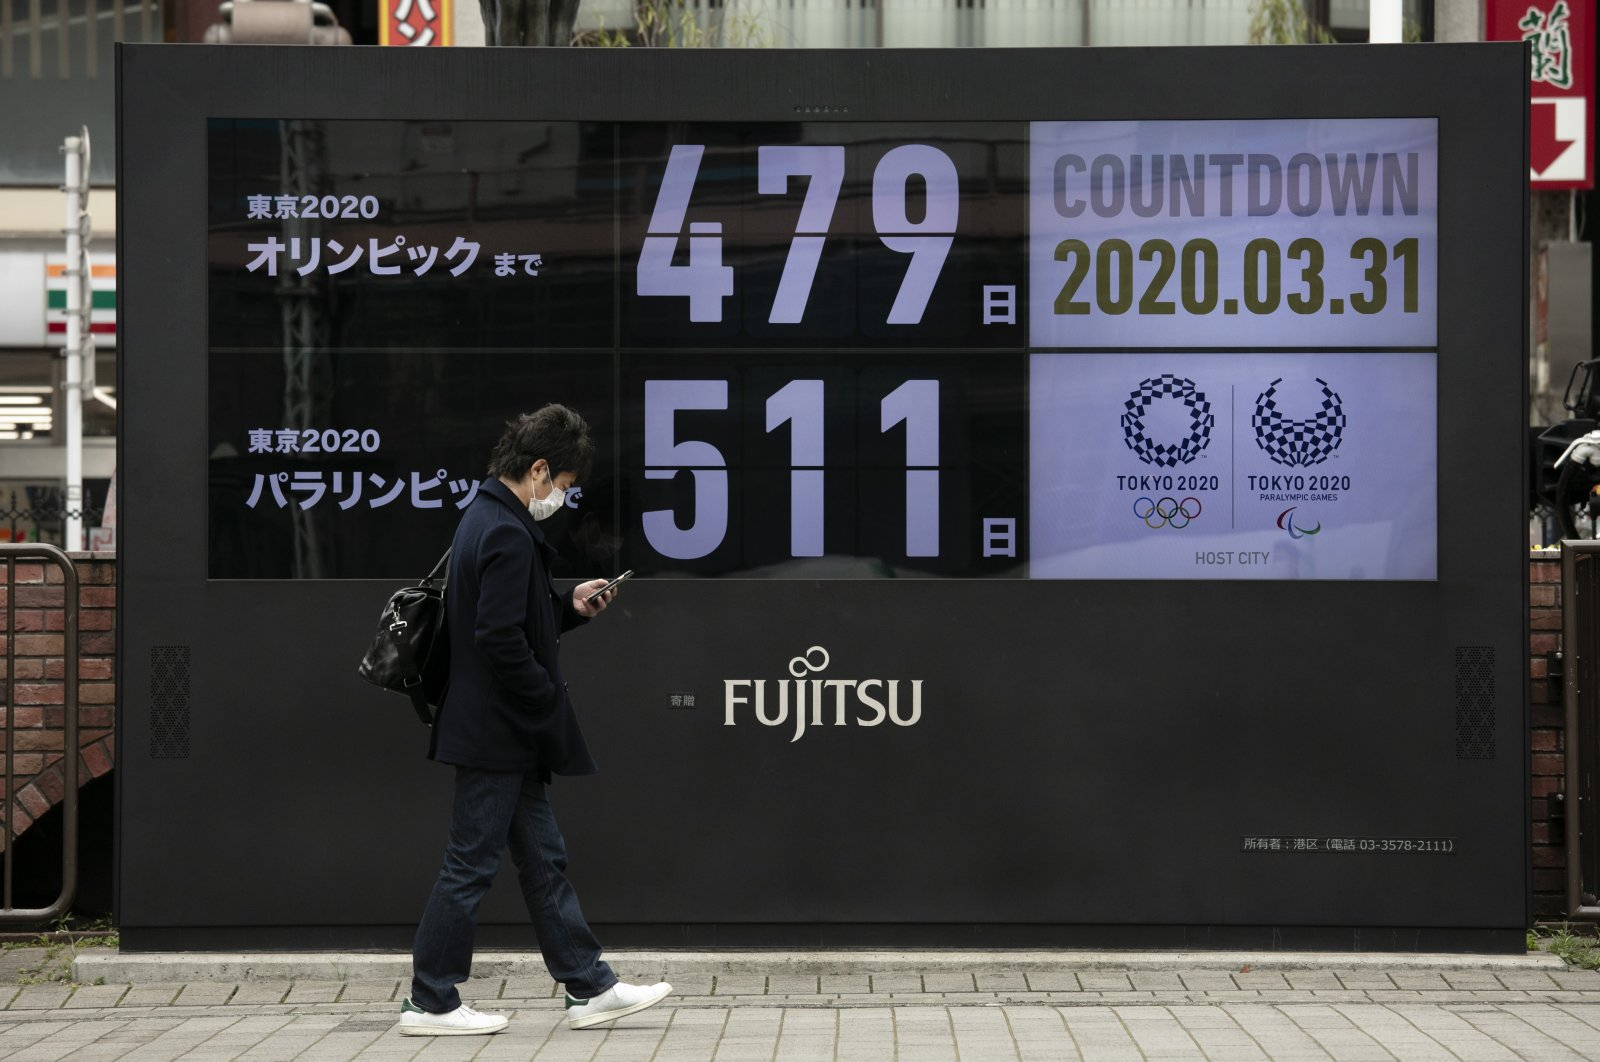 A man walks past a countdown display for the Tokyo 2020 Olympics and Paralympics, Tokyo, March 31, 2020. (AP Photo)